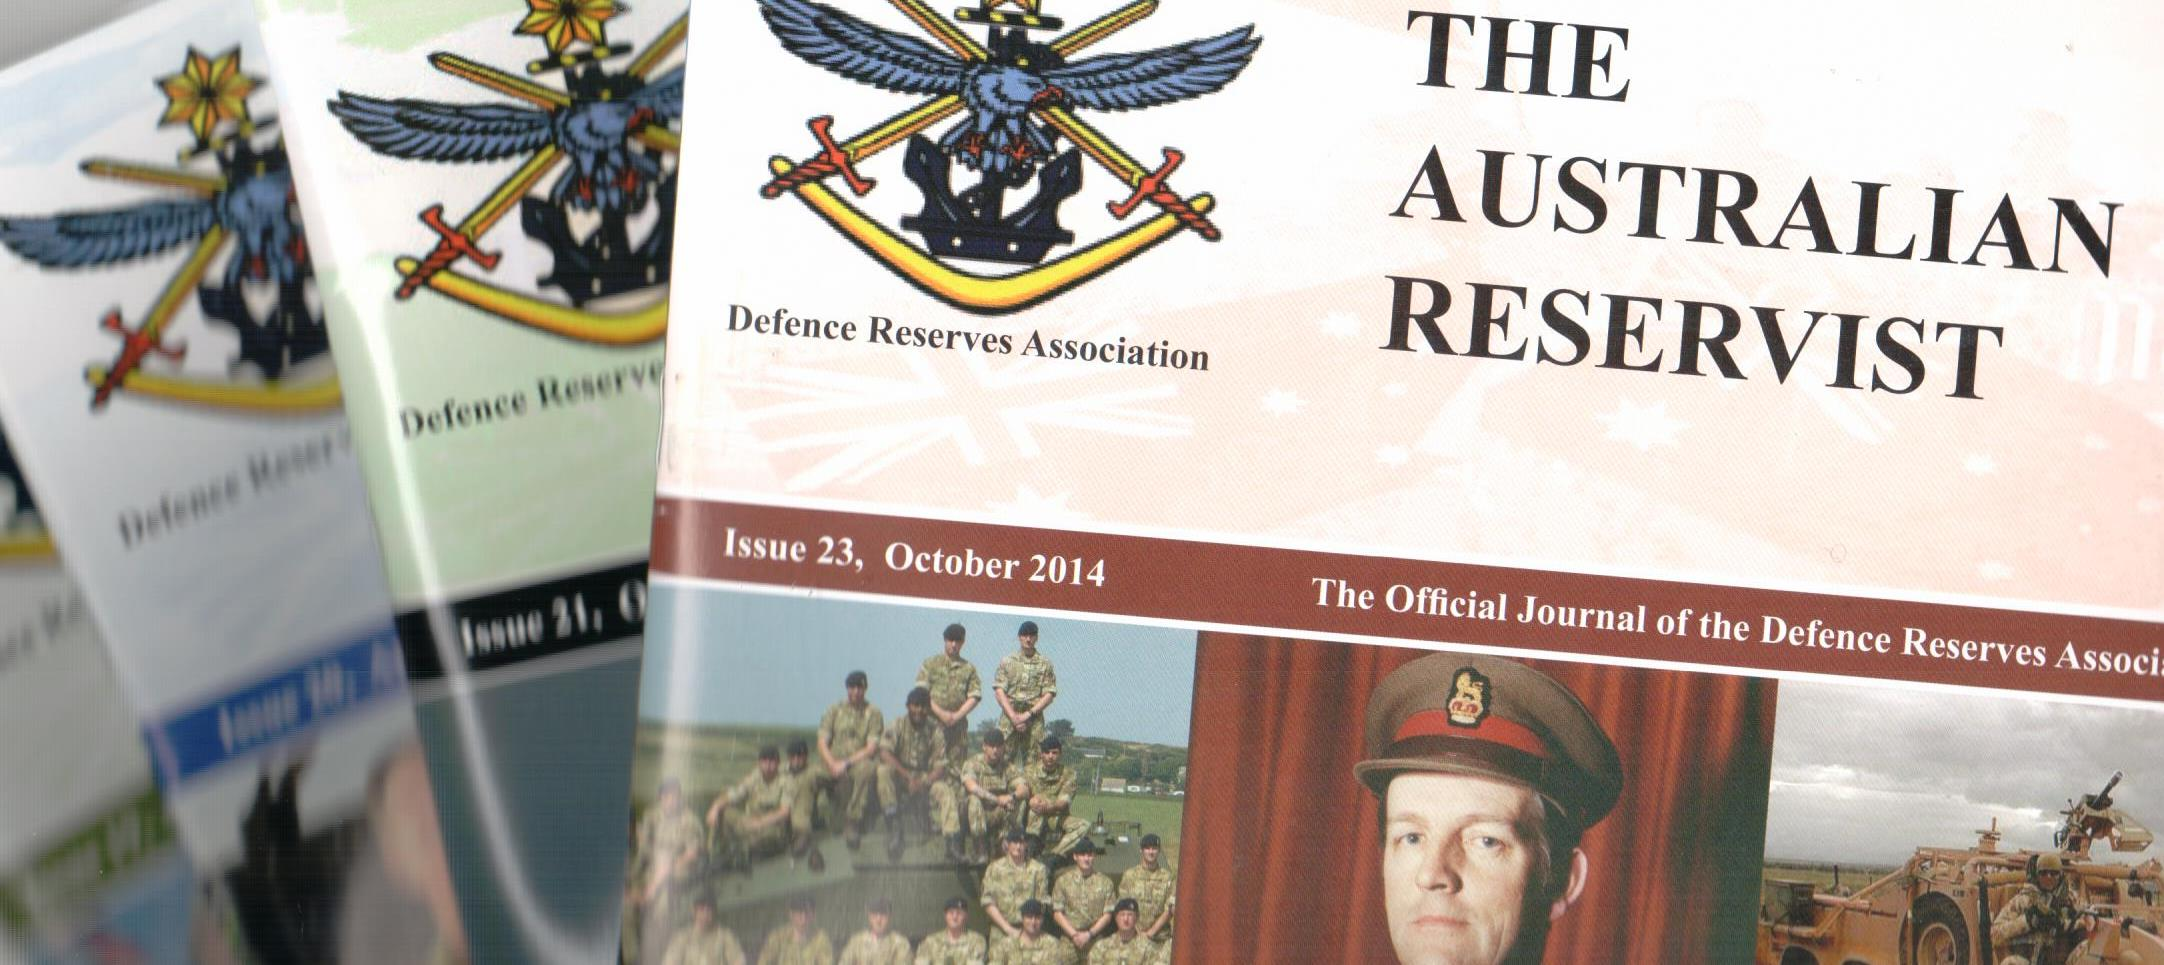 The DRA Journal - The Australian Reservist